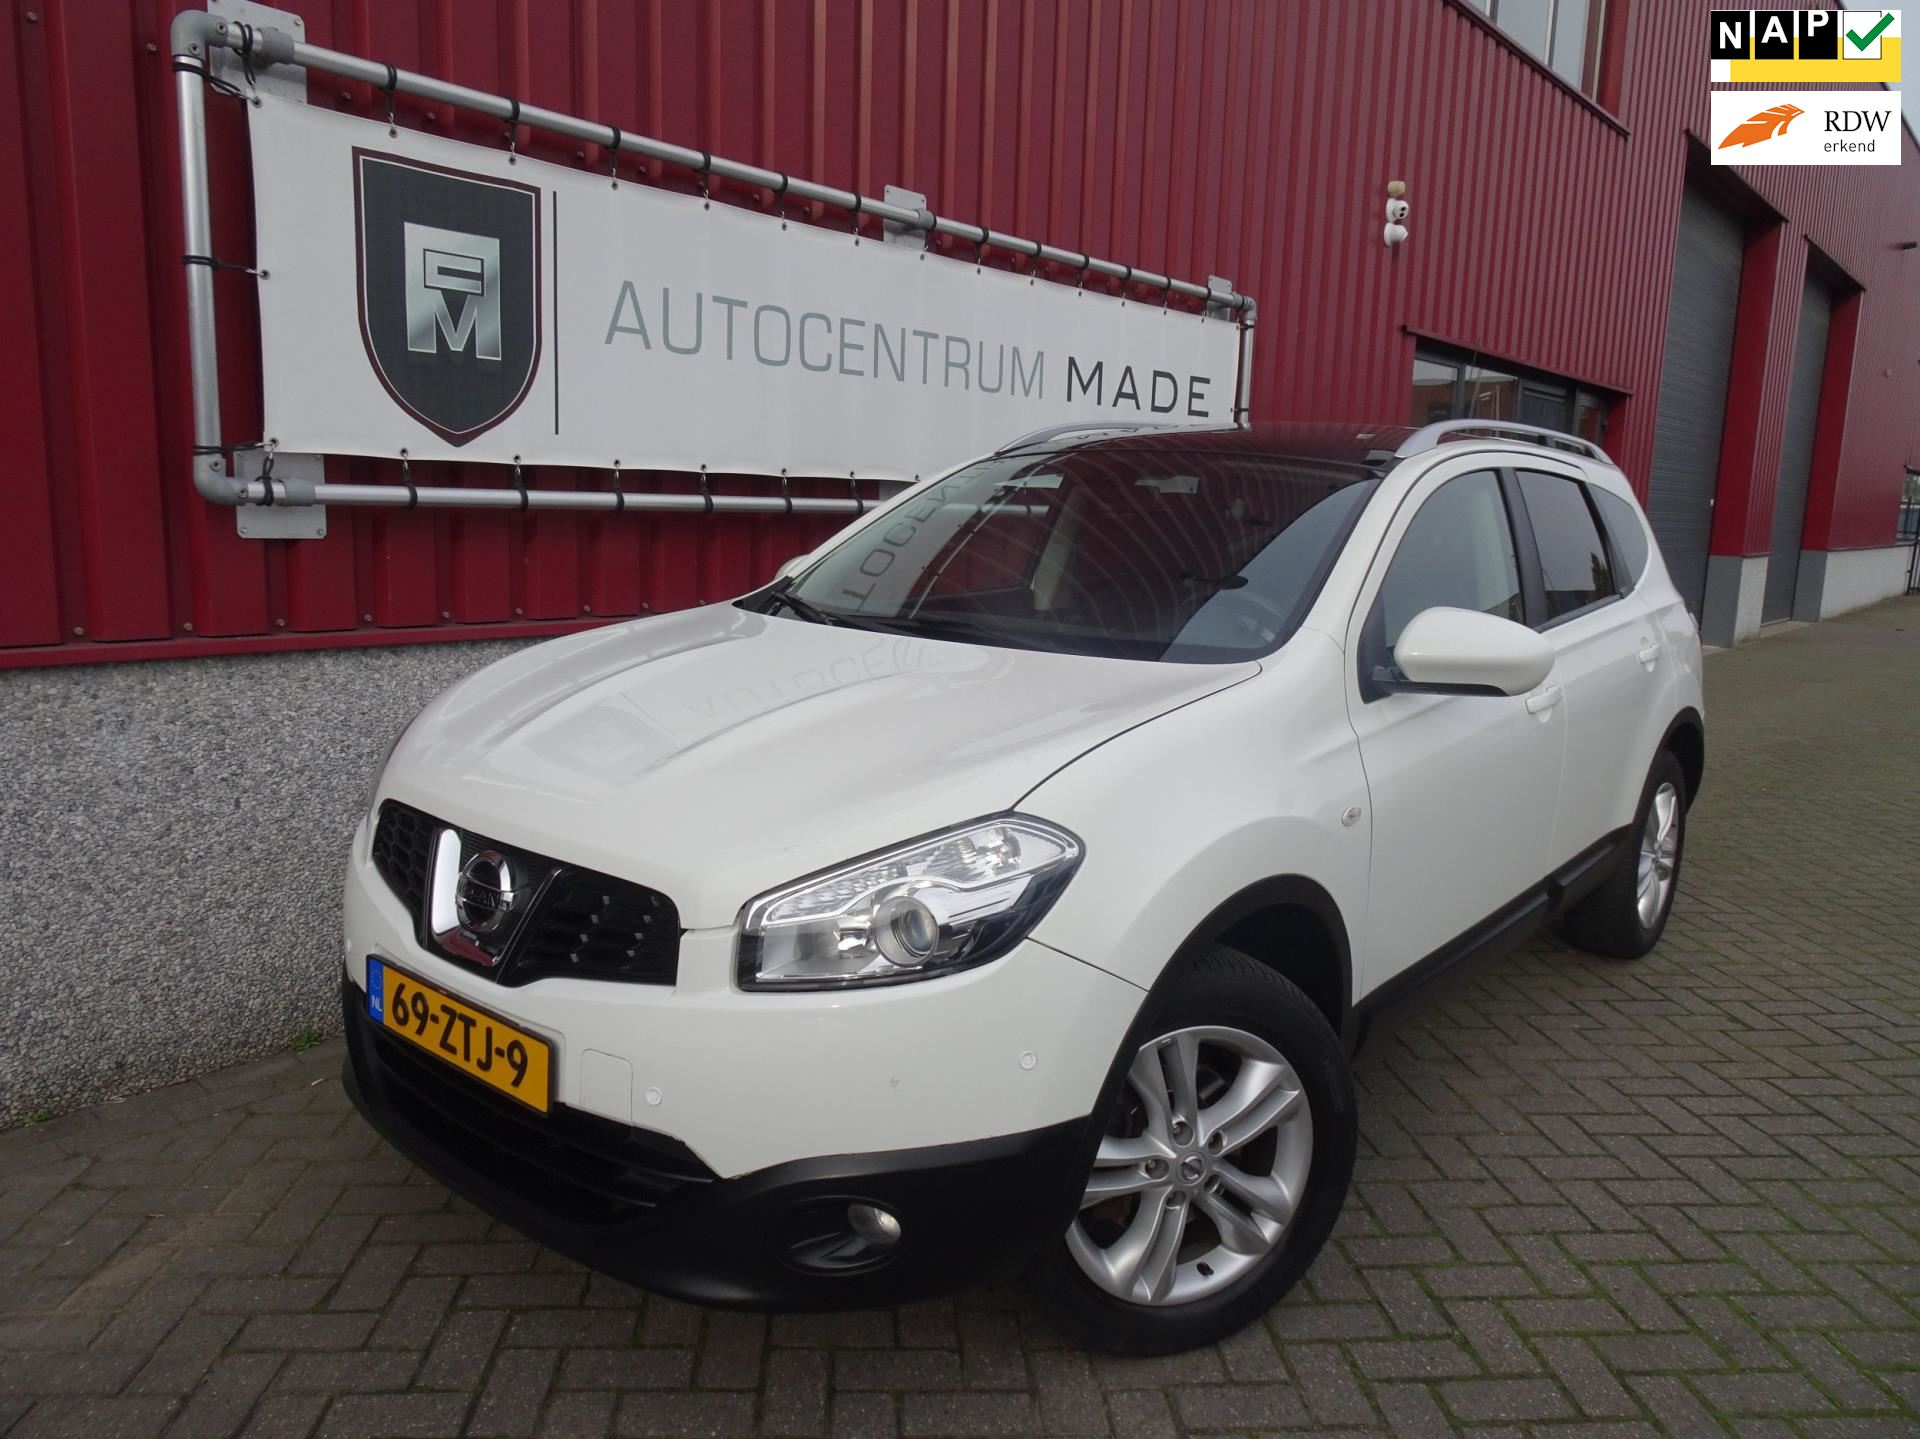 Nissan Qashqai 2 occasion - Auto Centrum Made